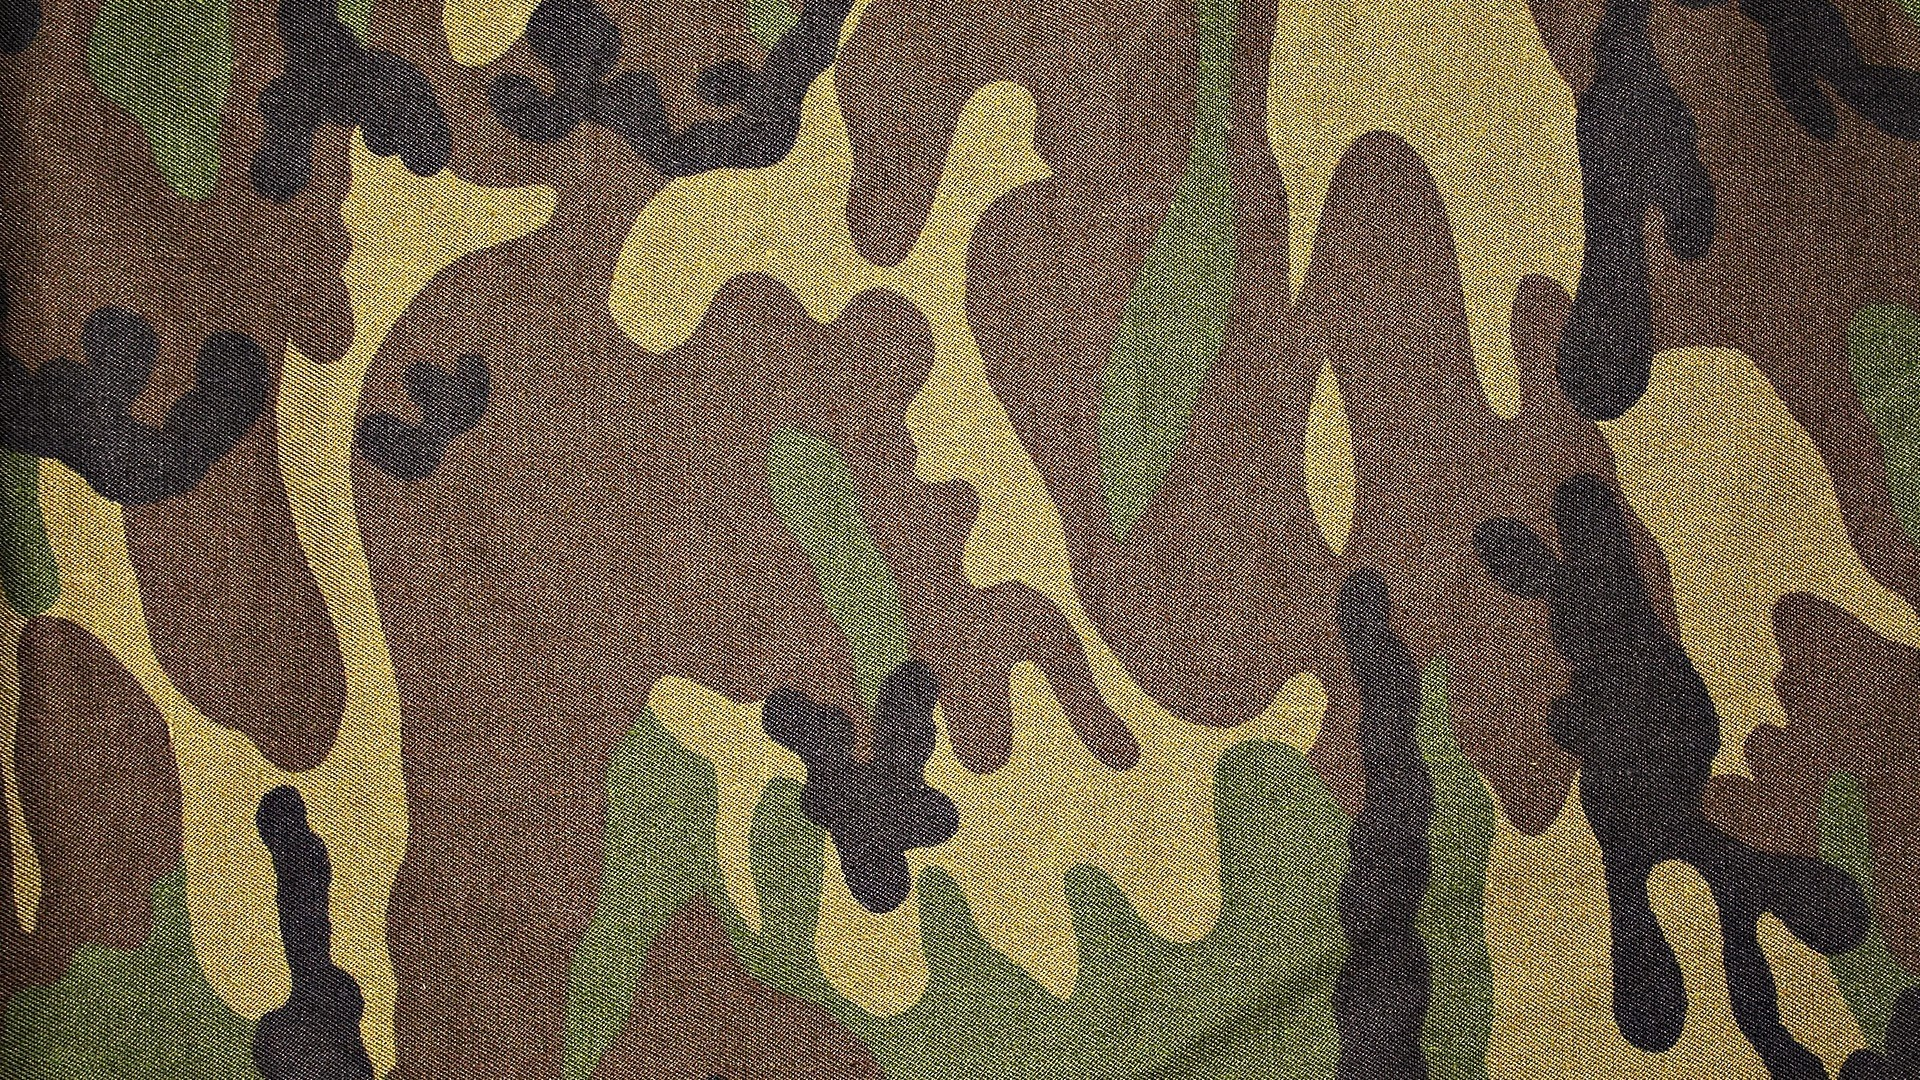 1920x1080 pattern texture military stains ART background design surface textile soil  tapestry military camouflage